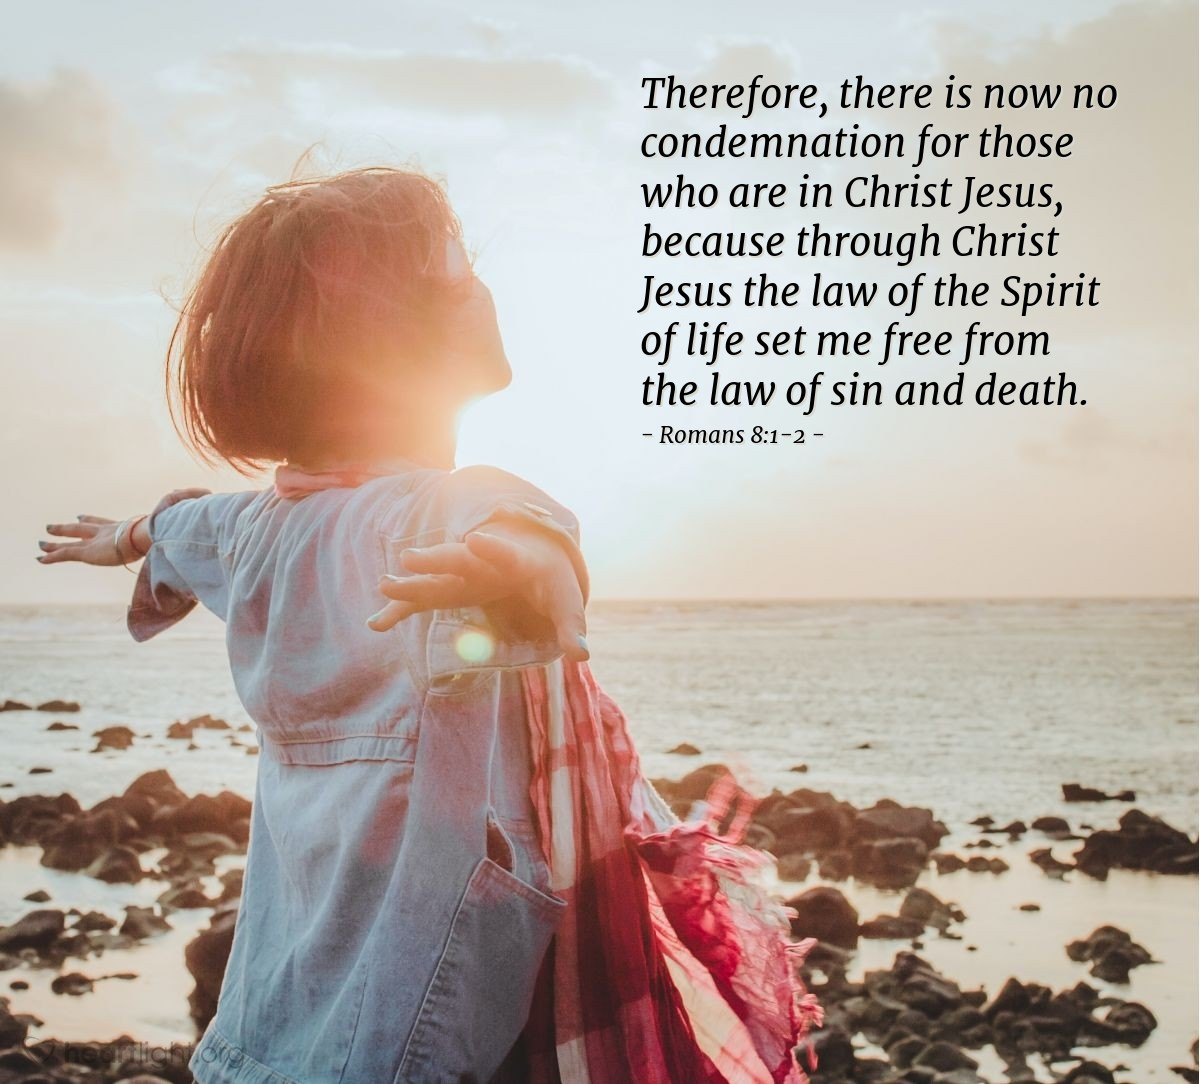 Illustration of Romans 8:1-2 — Therefore, there is now no condemnation for those who are in Christ Jesus, because through Christ Jesus the law of the Spirit of life set me free from the law of sin and death.